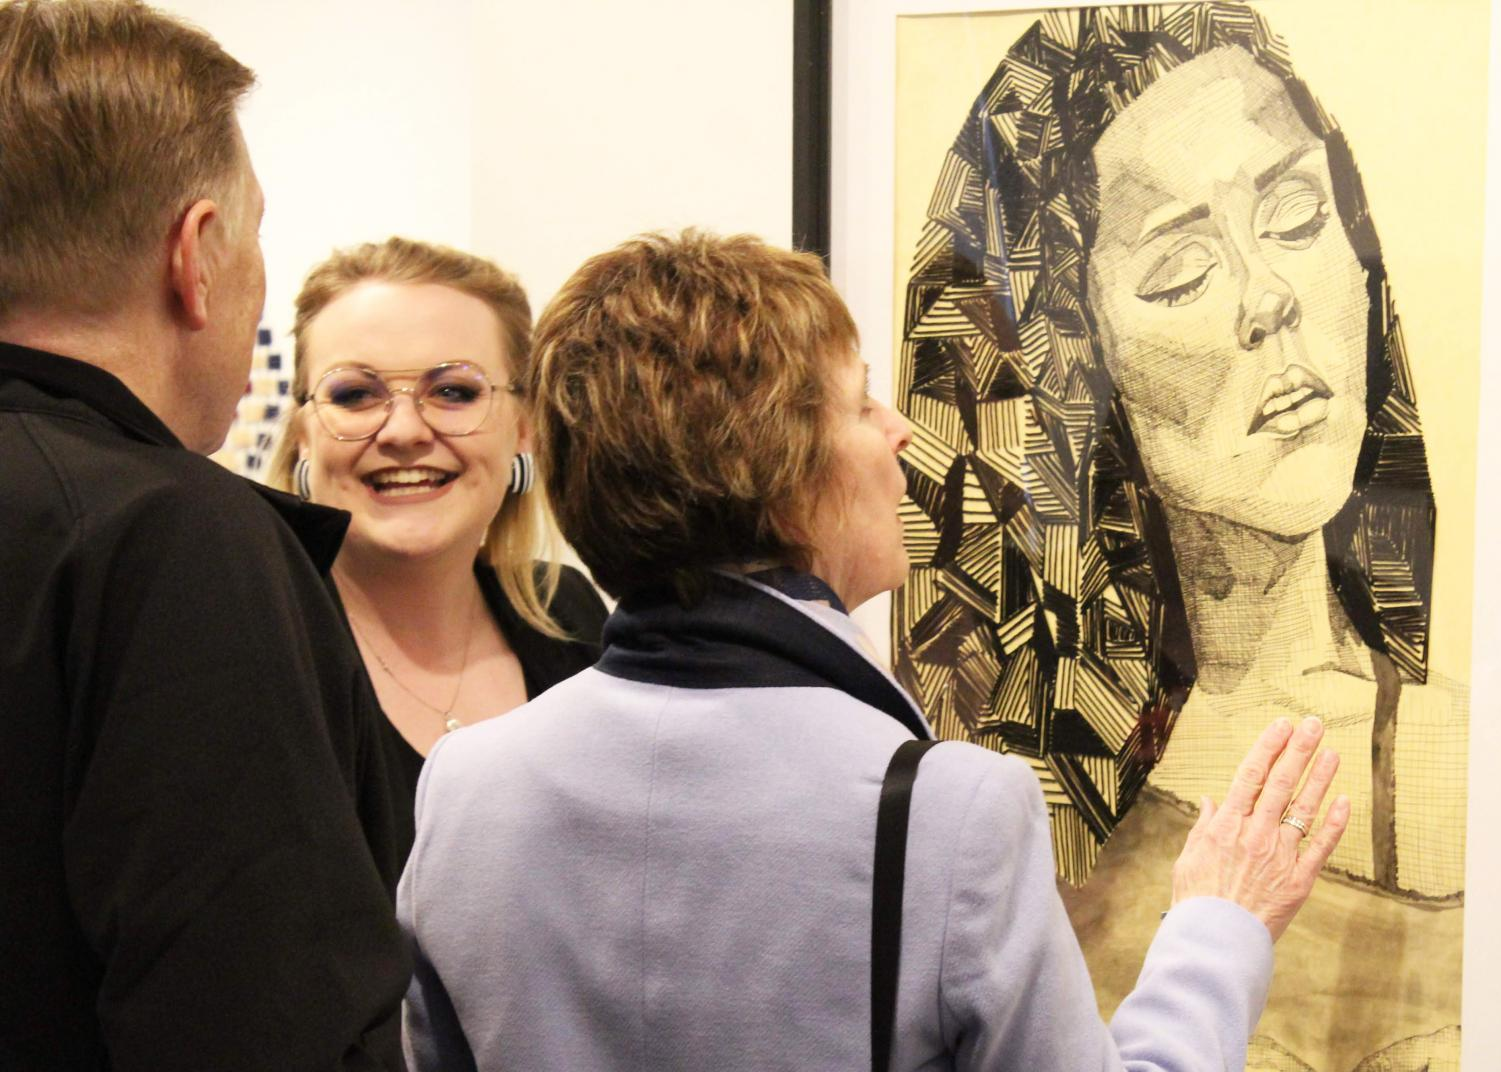 Senior Elley Coffin speaks to spectators during opening night of the senior art exhibit. Coffin is one of seven graduating art students displaying work in the show.